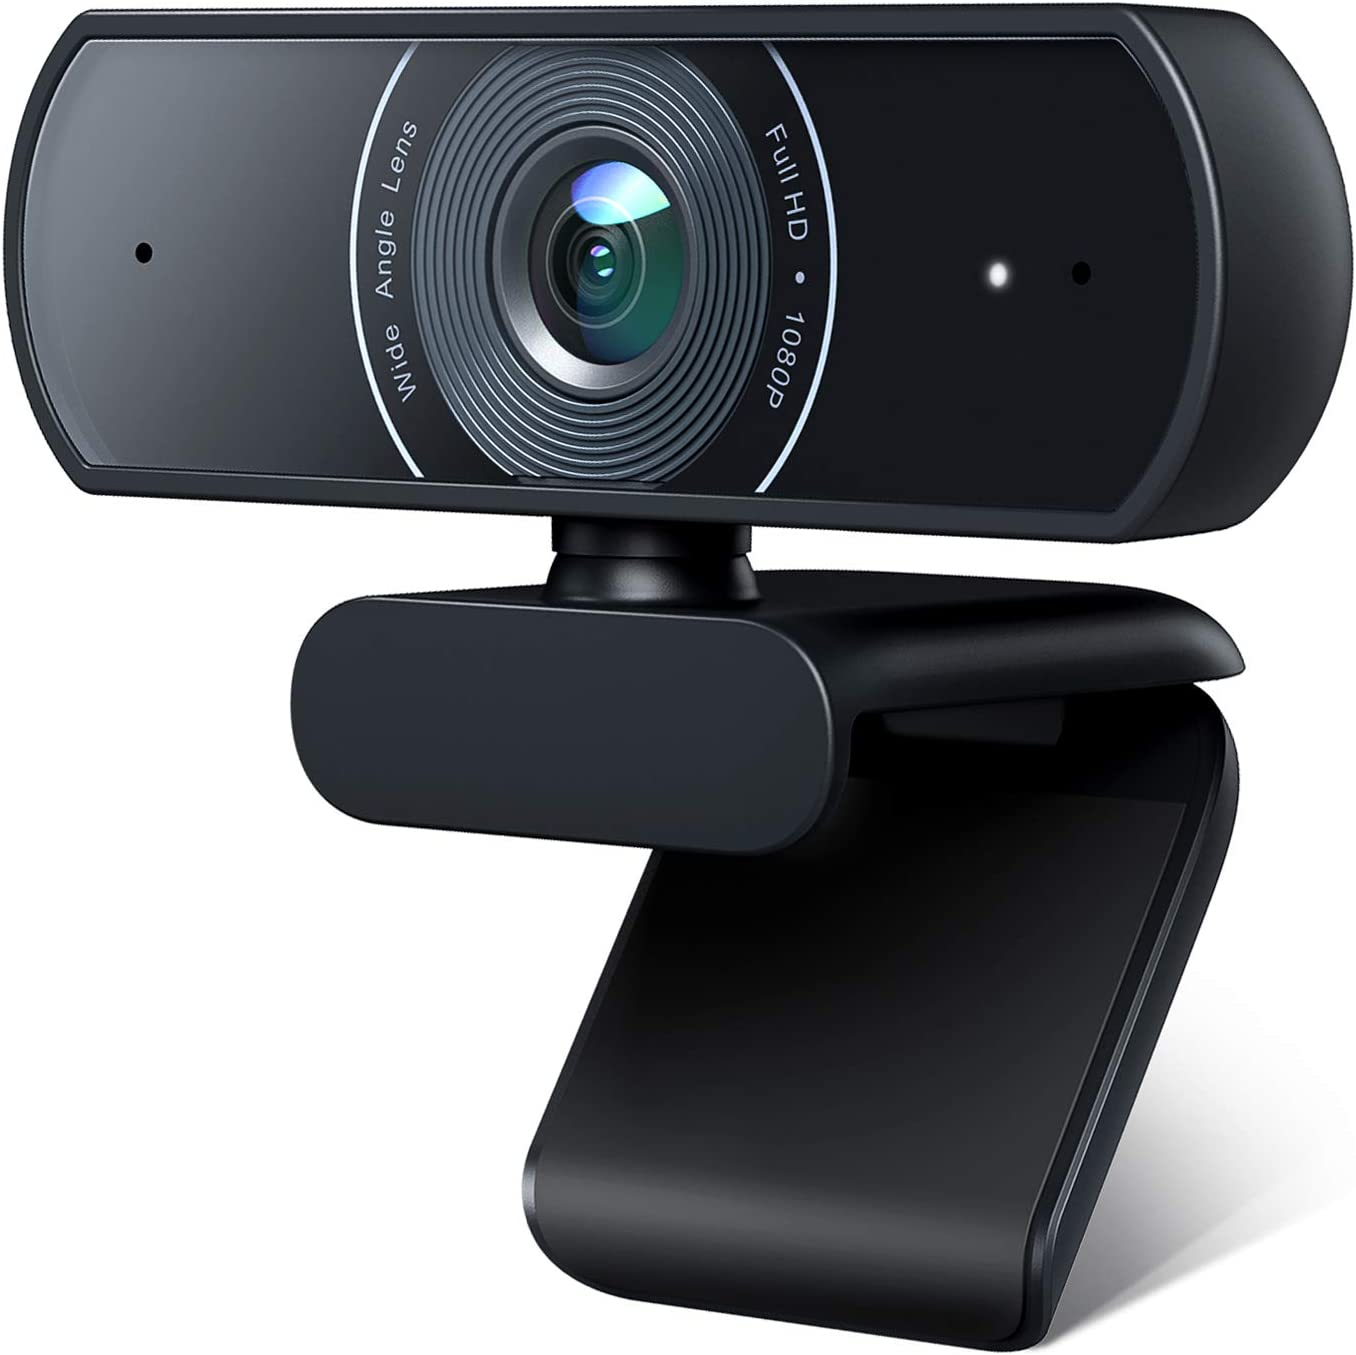 Amazon Com Victure 1080p Webcam Dual Built In Microphones Full Hd Video Camera For Computers Pc Laptop Desktop Usb Plug And Play Conference Study Video Calling